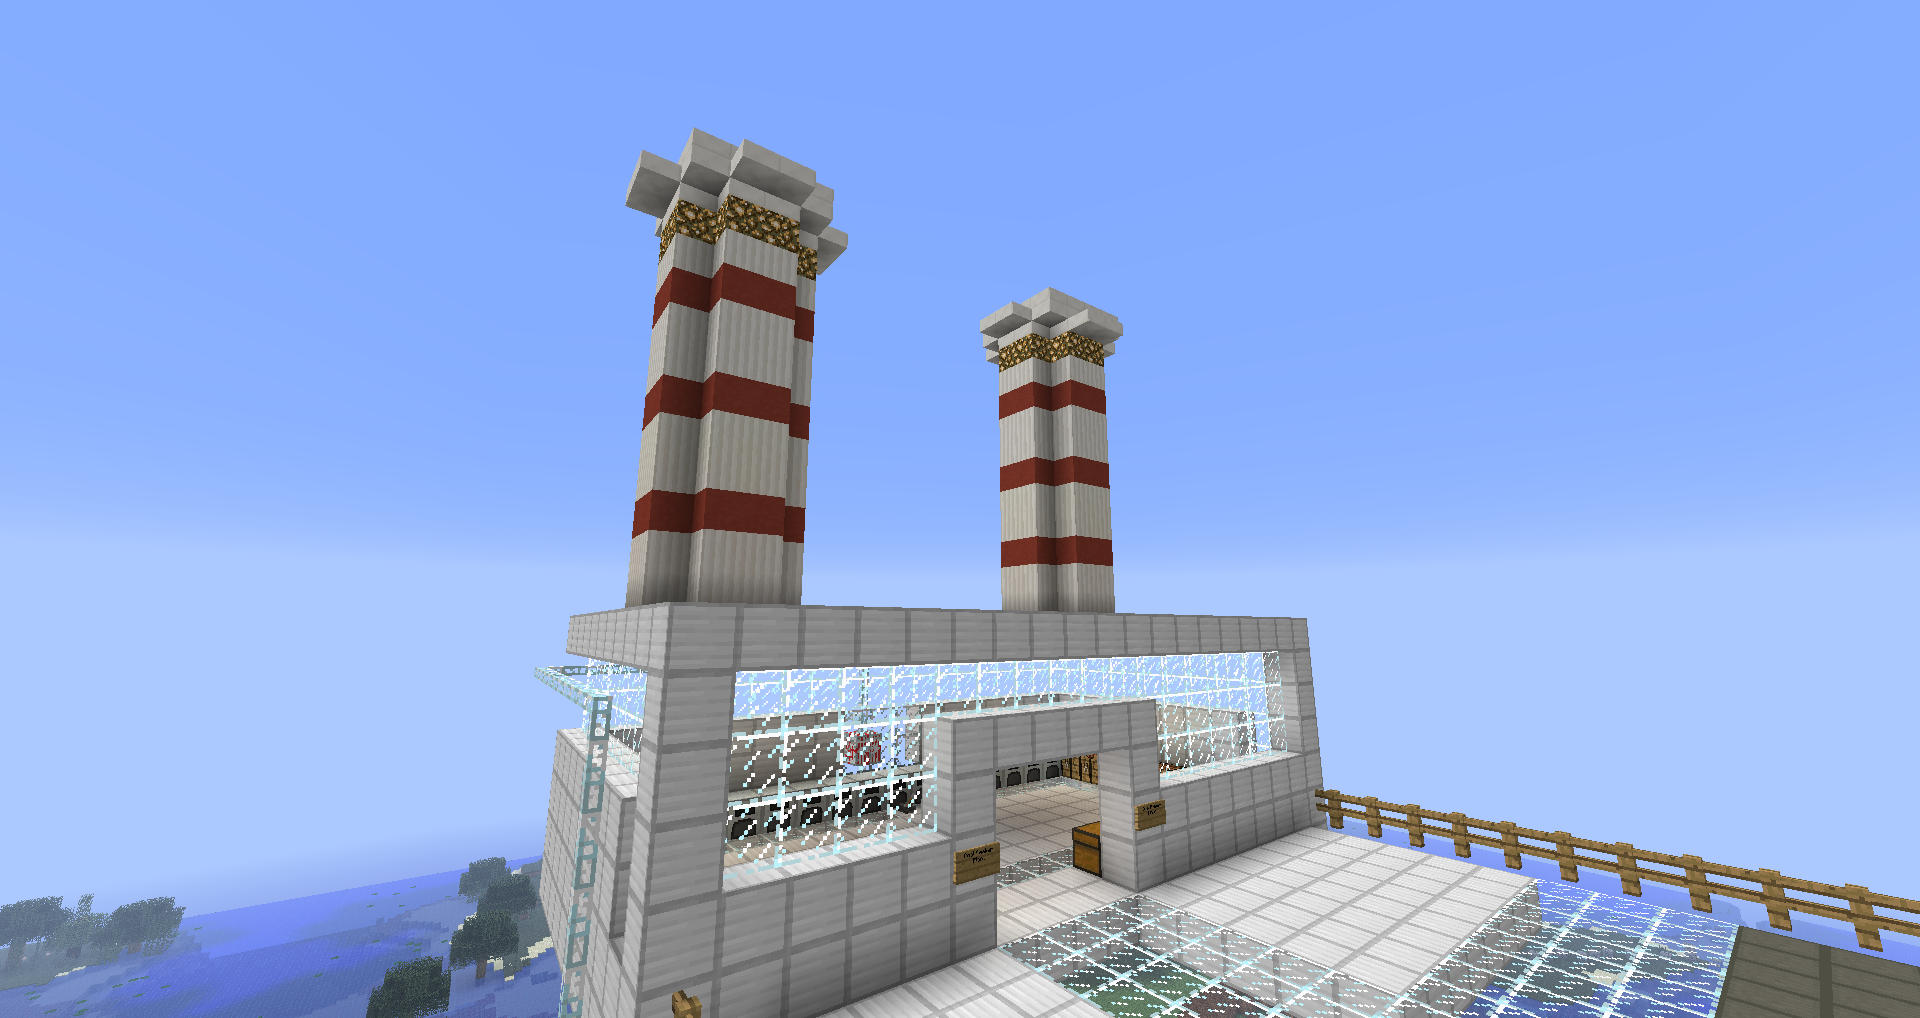 Overview of the coal plant, complete with smoke stacks